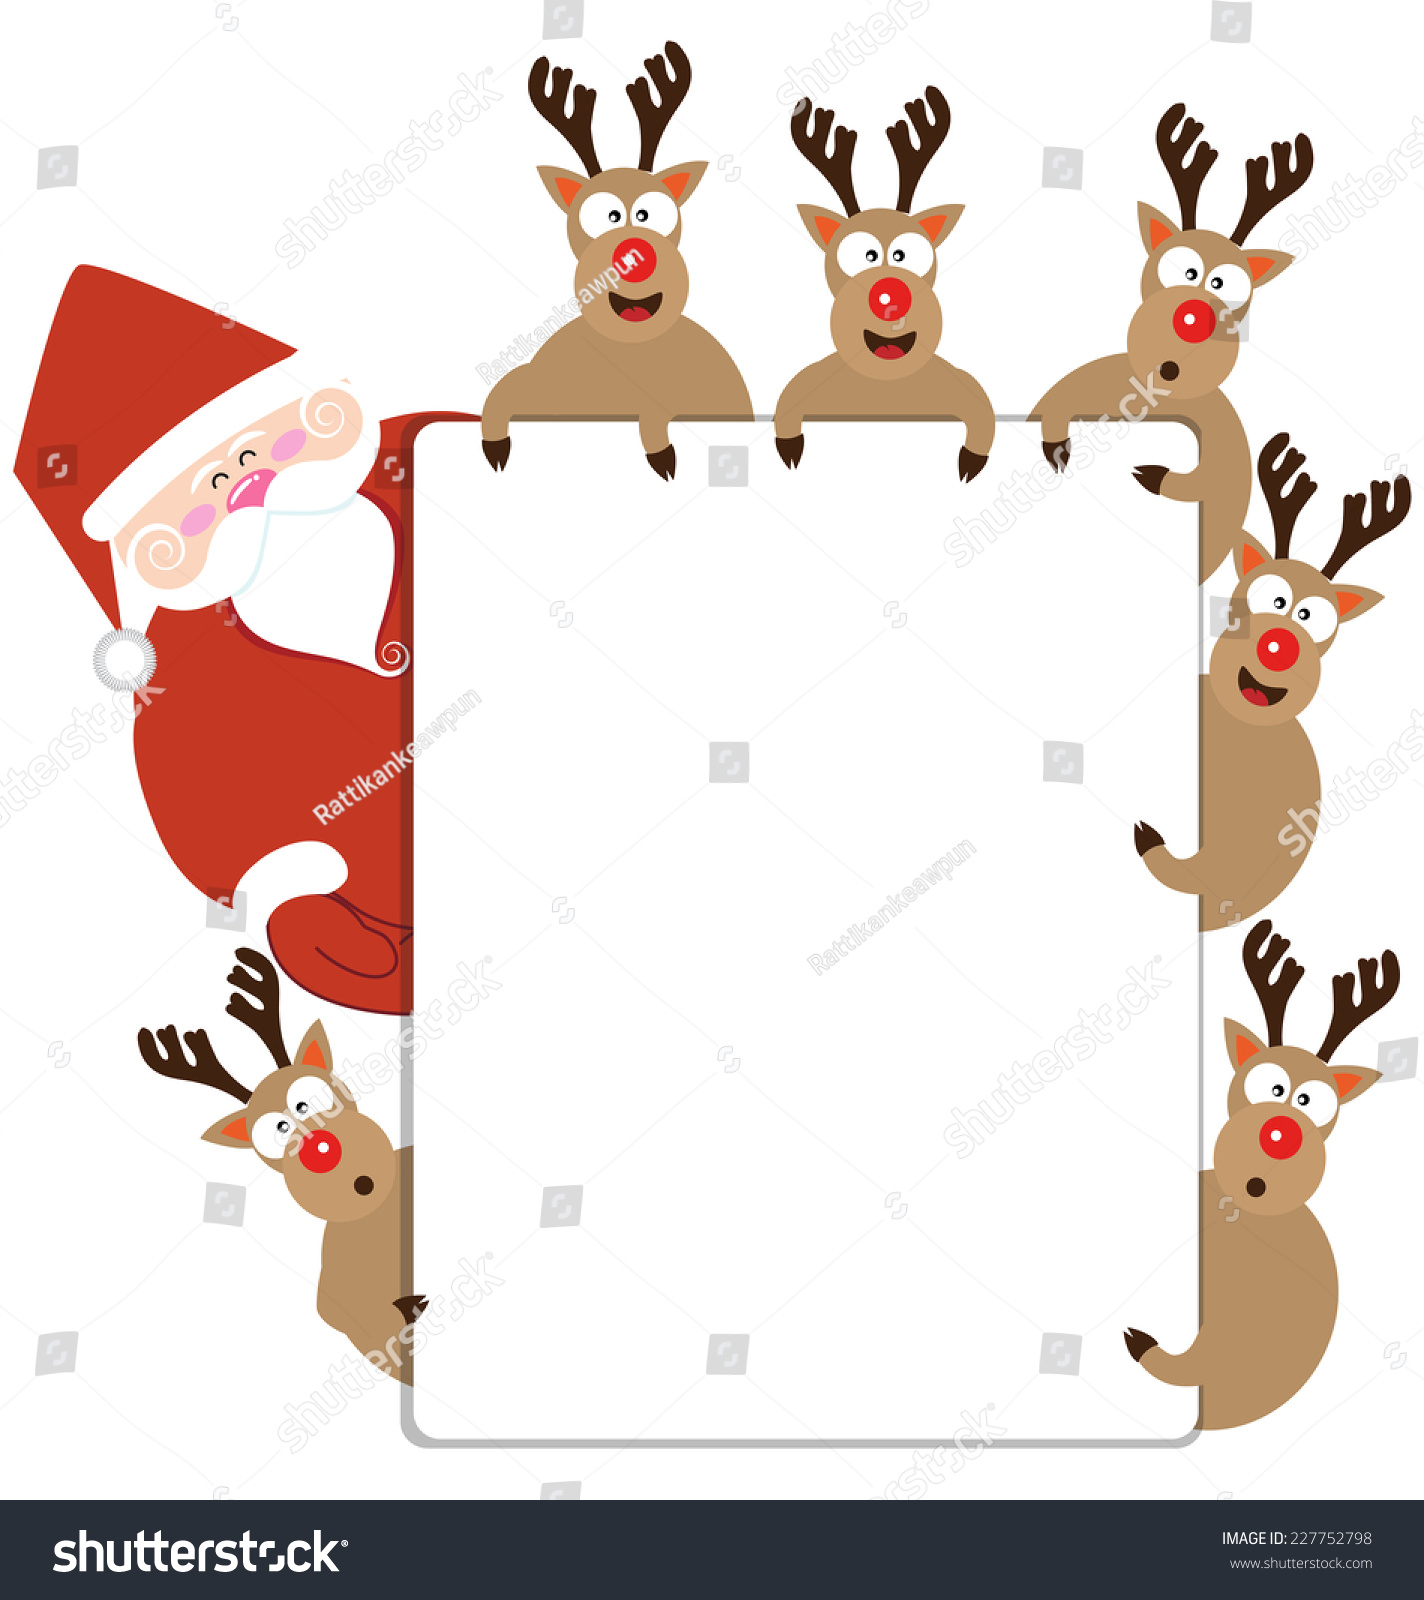 Santa Claus And Reindeer Present Christmas Card Vector ...